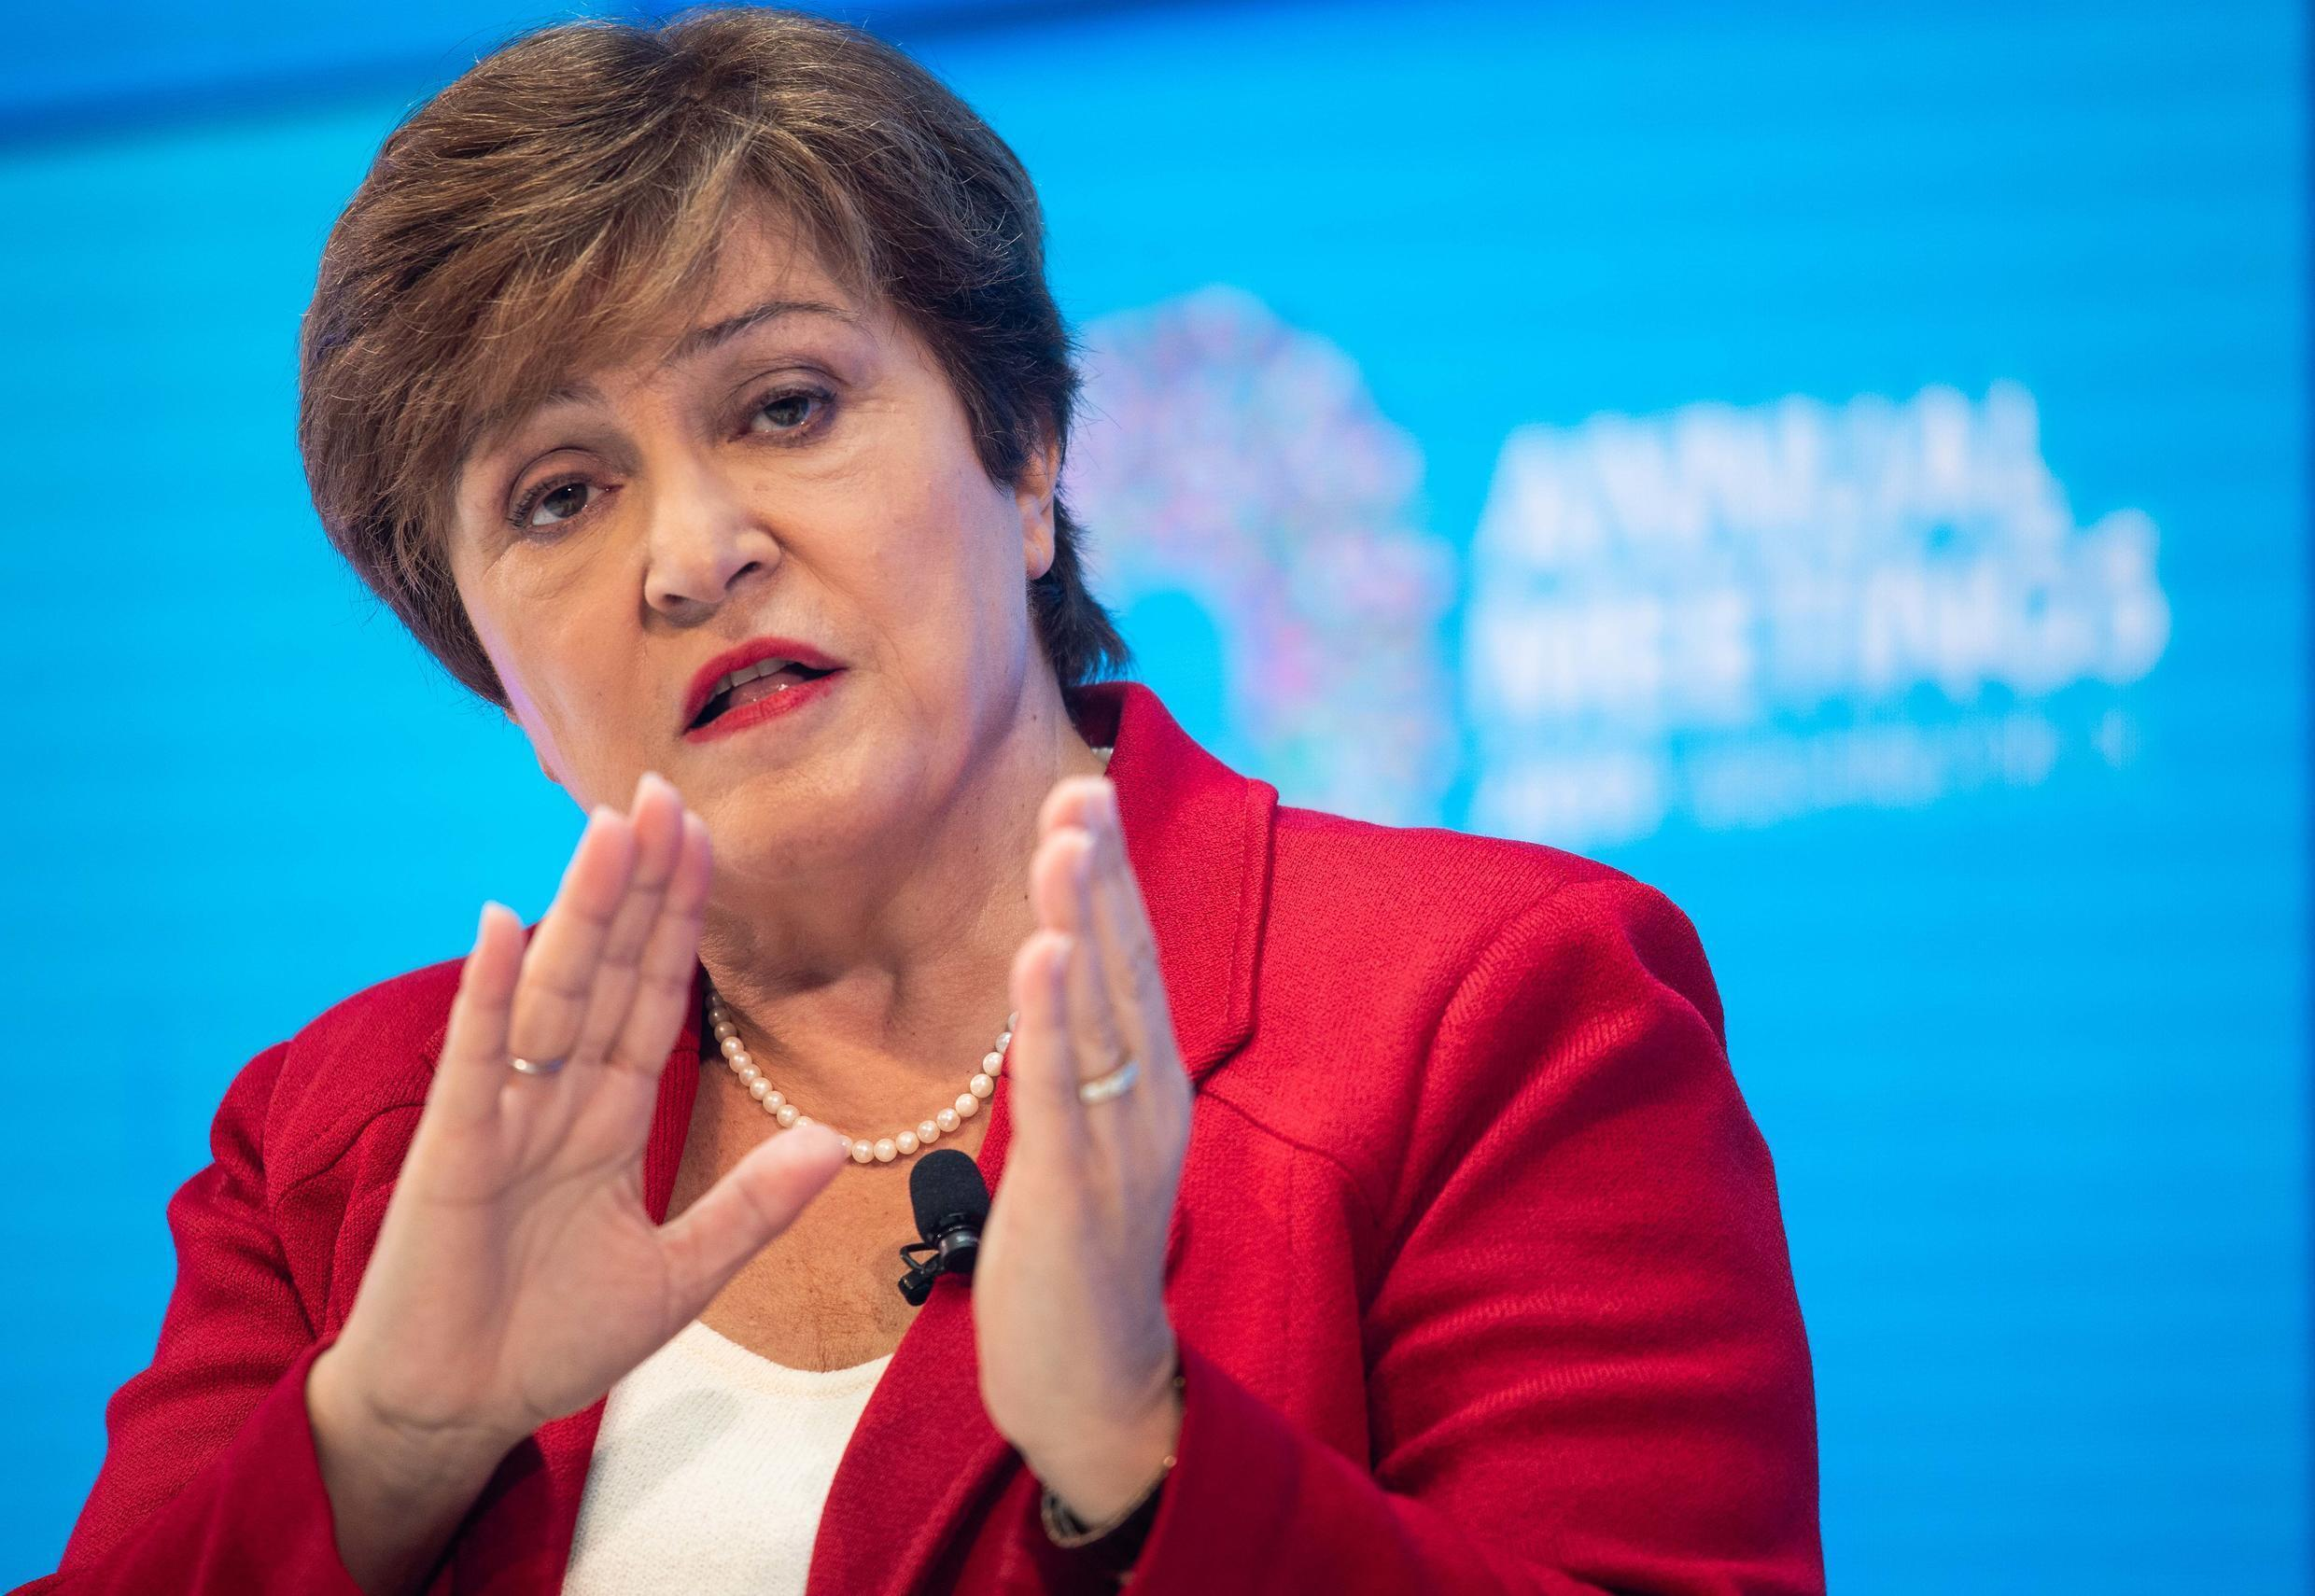 IMF Managing Director Kristalina Georgieva urged G20 officials to accelerate vaccine rollout to poor countries